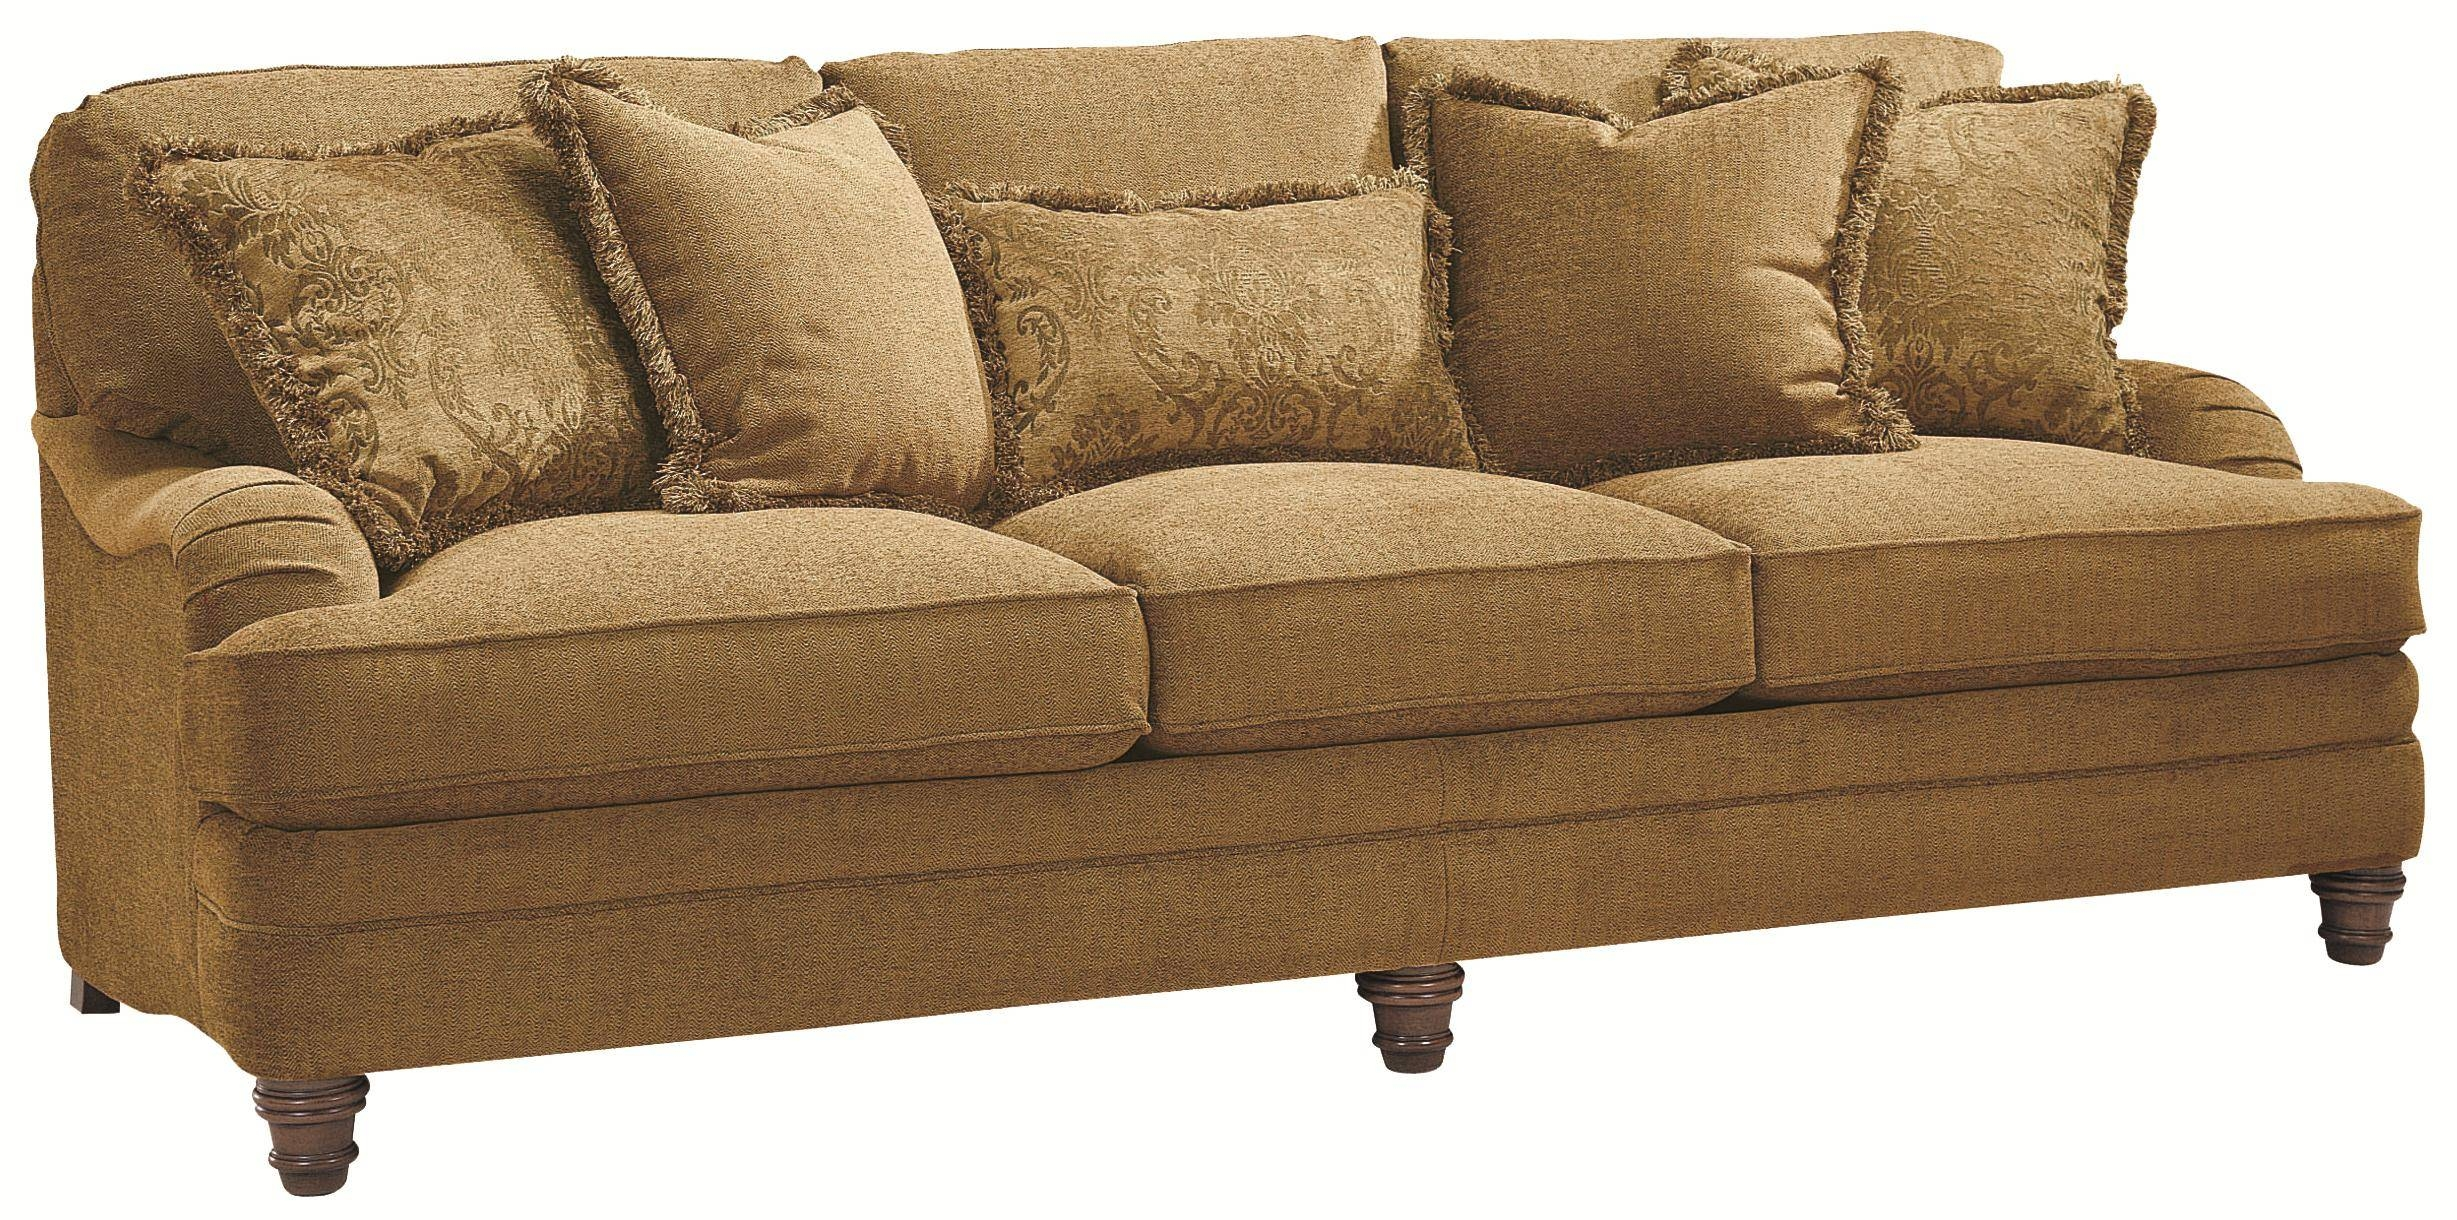 Bernhardt Tarleton Traditional Styled Stationary Sofa In Slightly for Bernhardt Tarleton Sofas (Image 4 of 15)